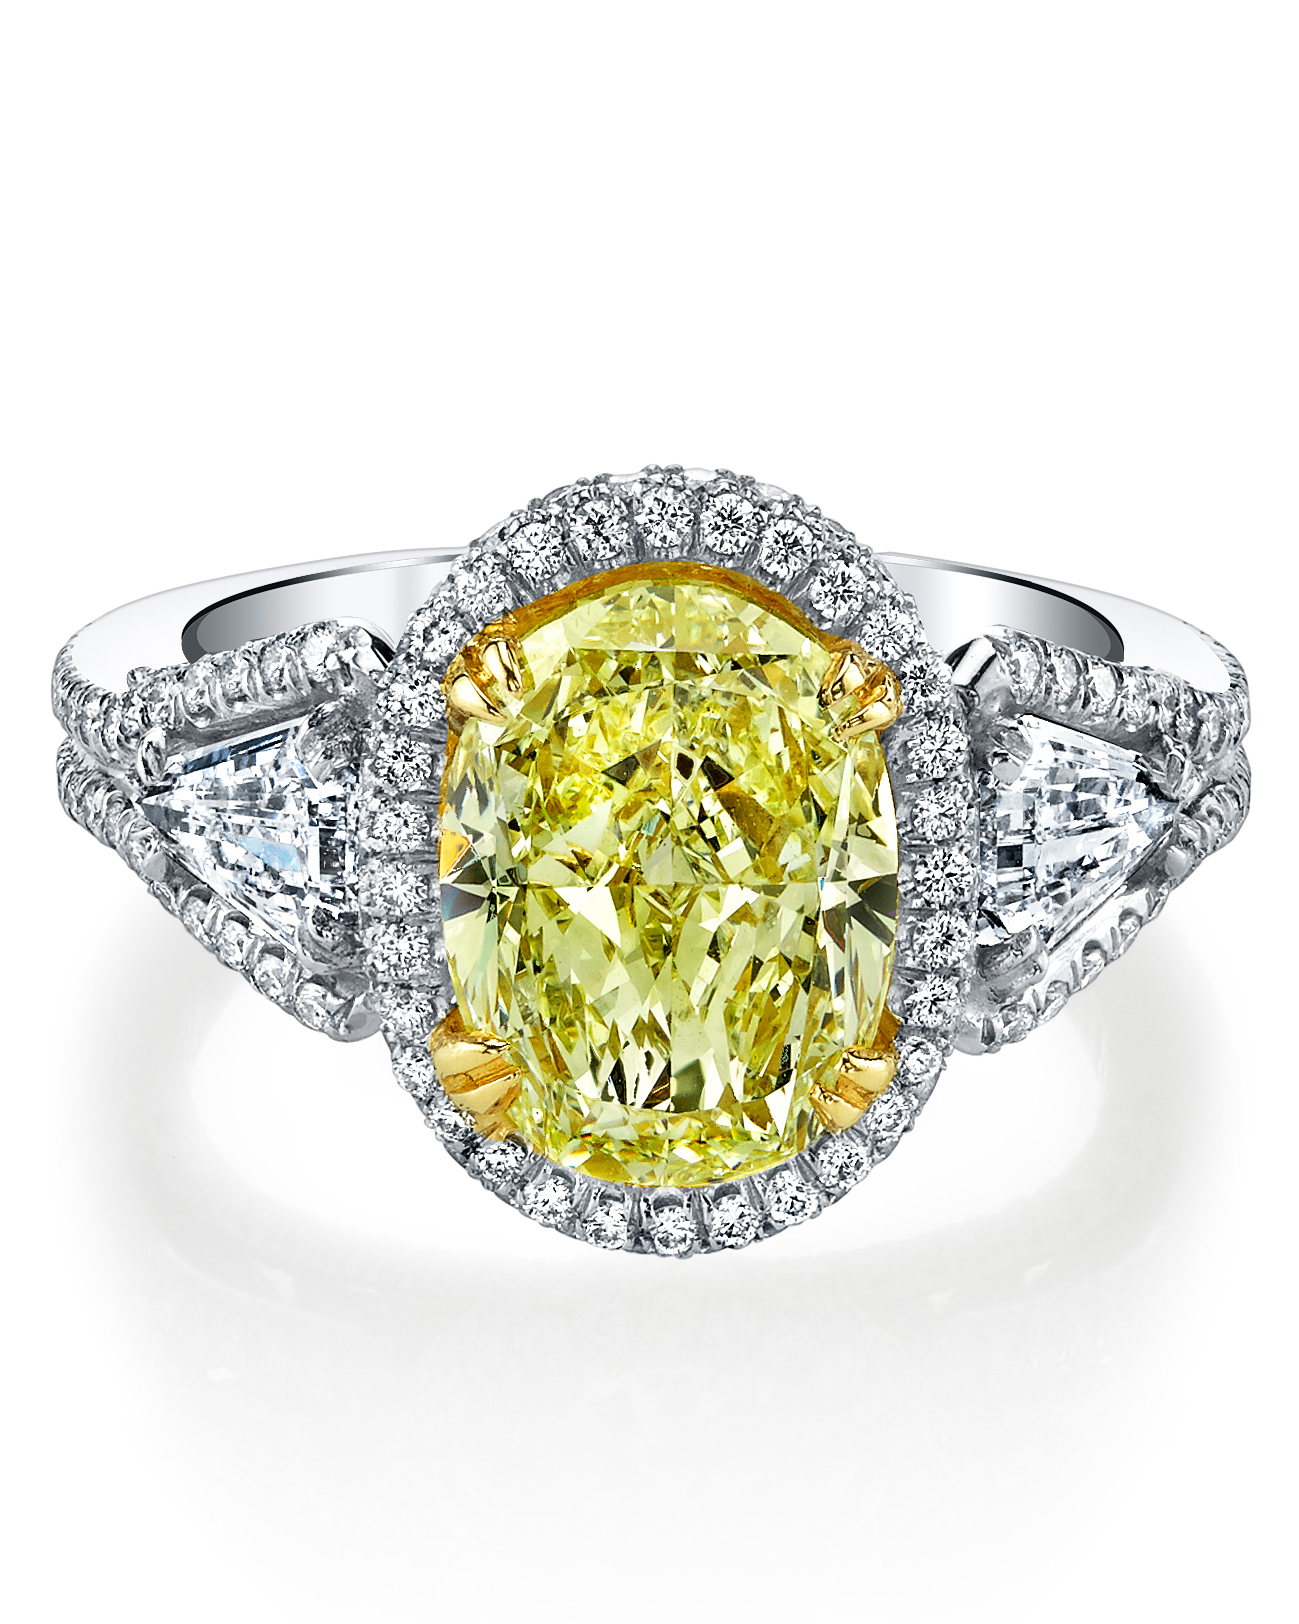 oval-cut-engagement-ring-harry-kotlar-0714.jpg